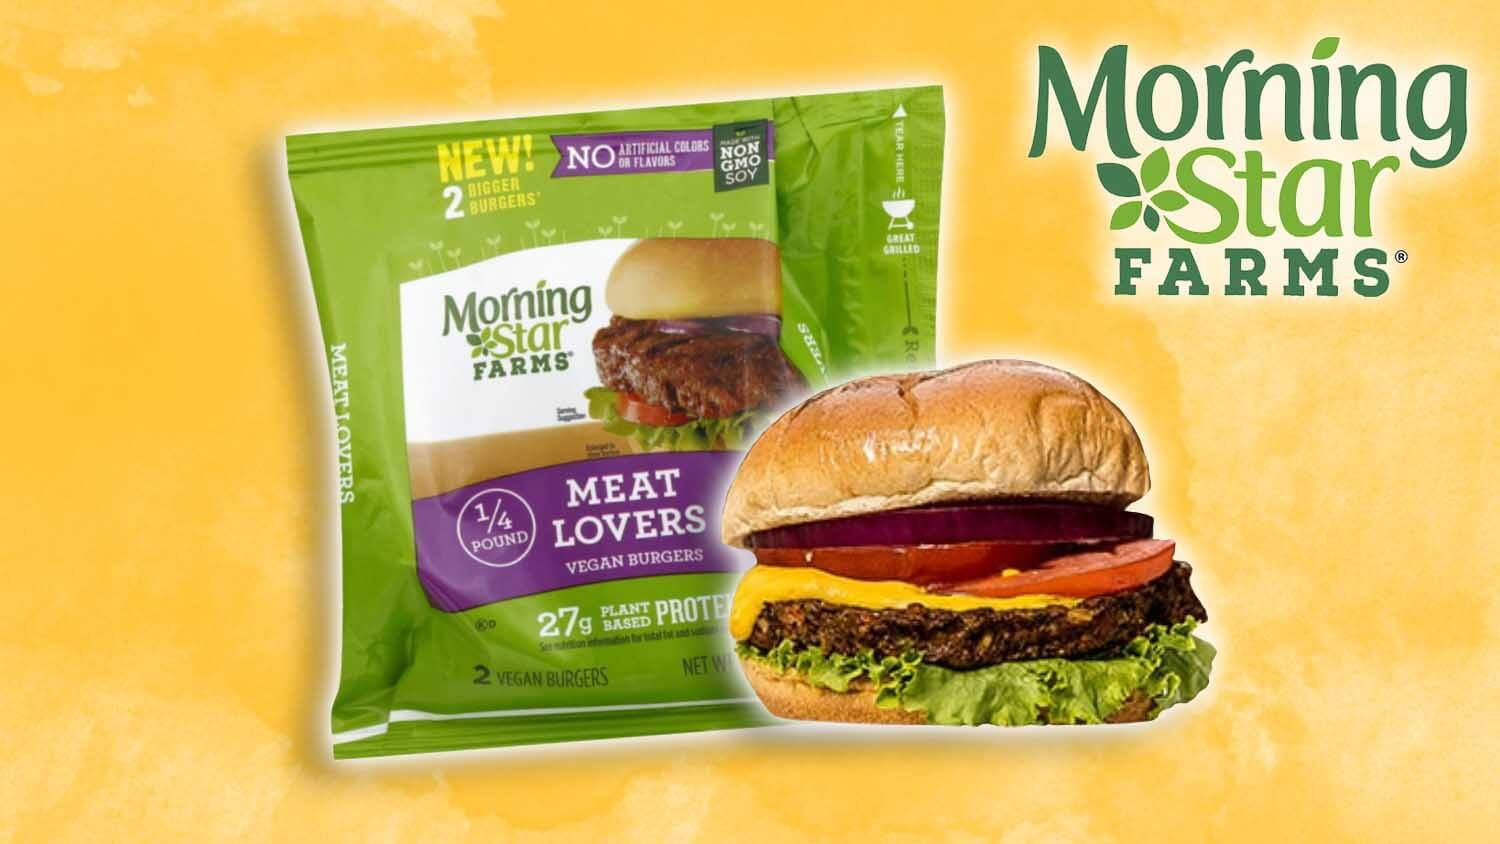 Kellogg Sells 90 Million Pounds of Plant-Based Meat a Year